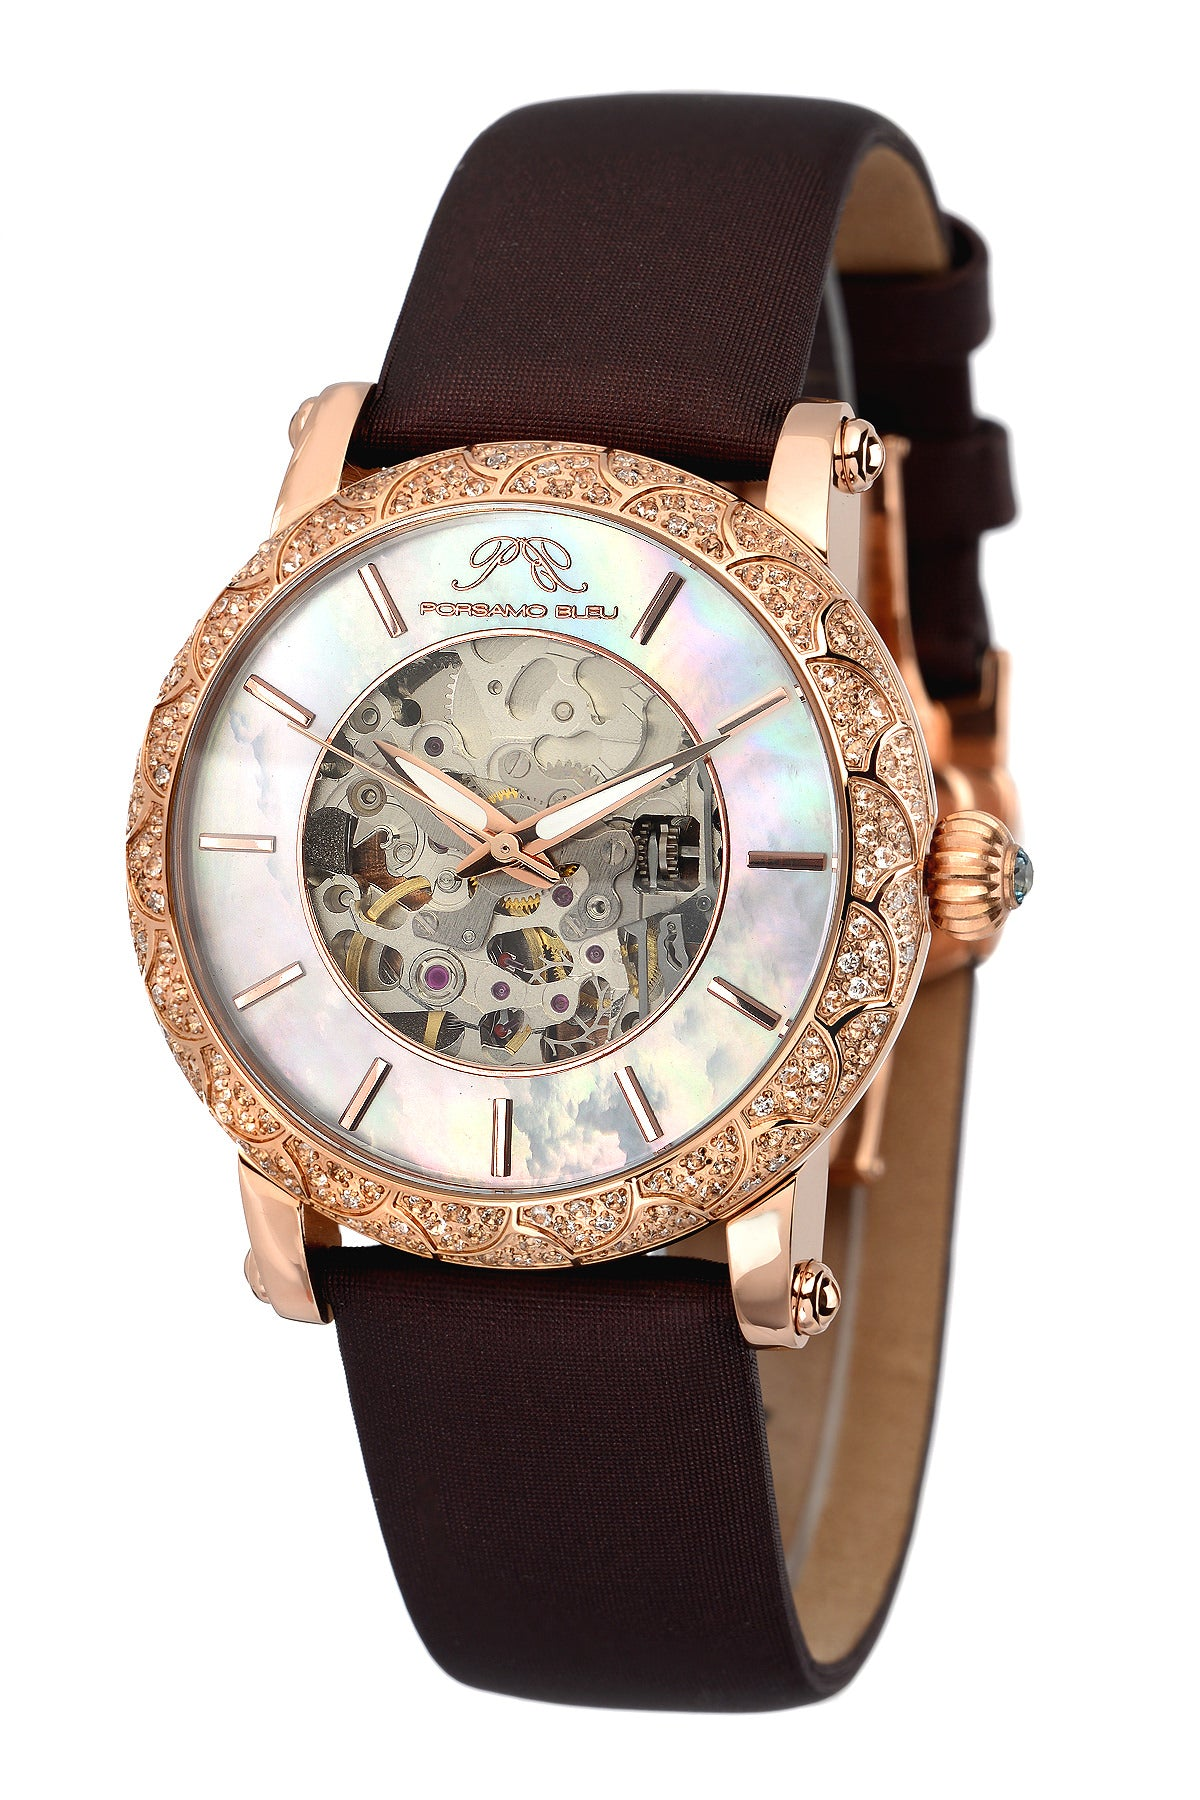 Porsamo Bleu Liza luxury automatic topaz women's watch, satin leather watch, rose, brown 691CLIL